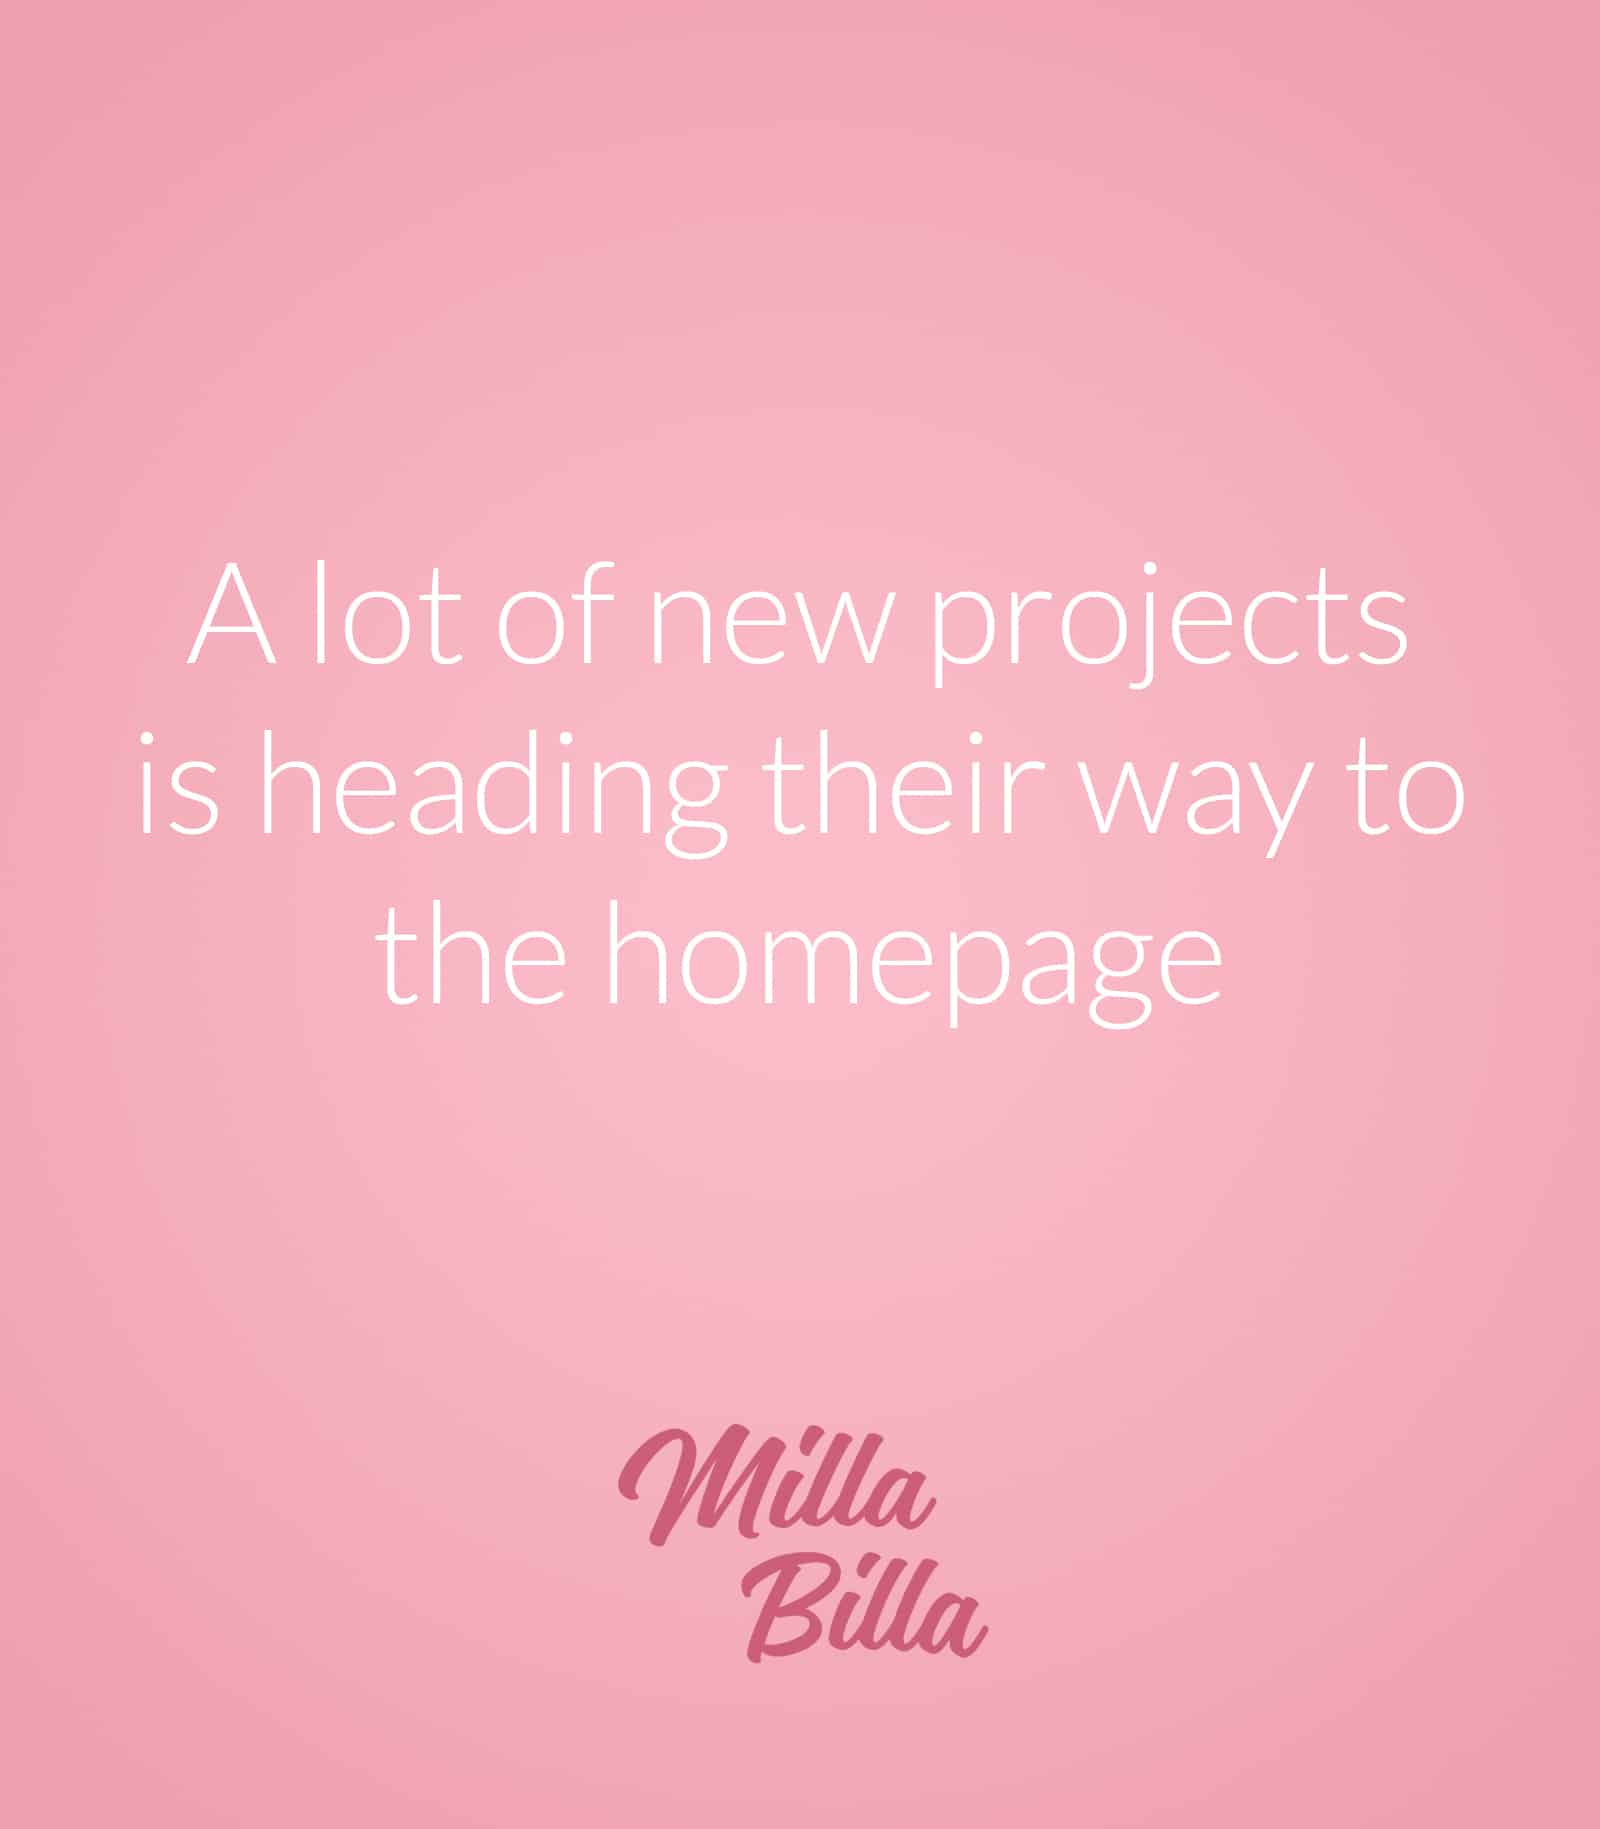 A lot of new projects is comming soon to Milla Billa!